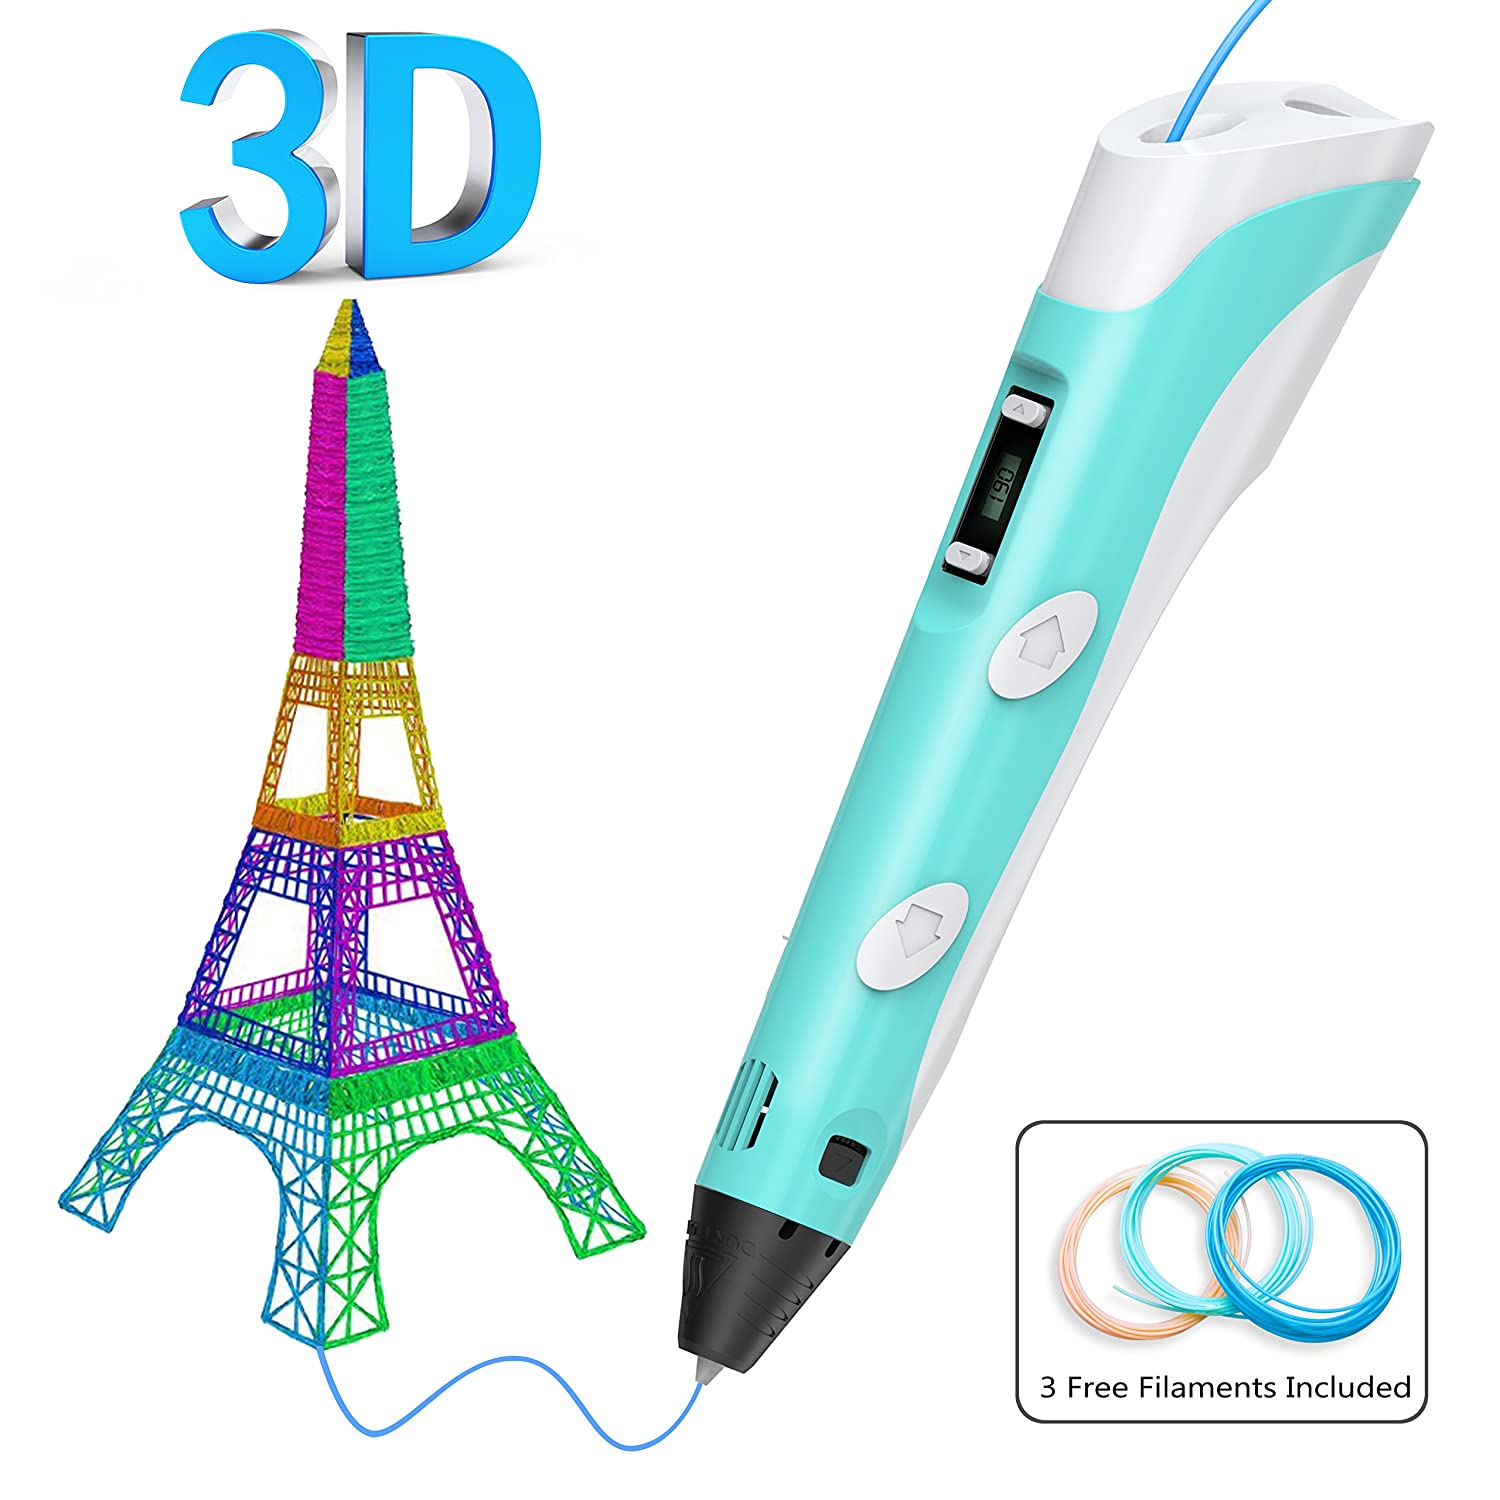 3D Printing Pen, Gvoo Upgraded Intelligent 3D Drawing Pen with LED Display Compatible with 1.75mm PLA/ABS Filament